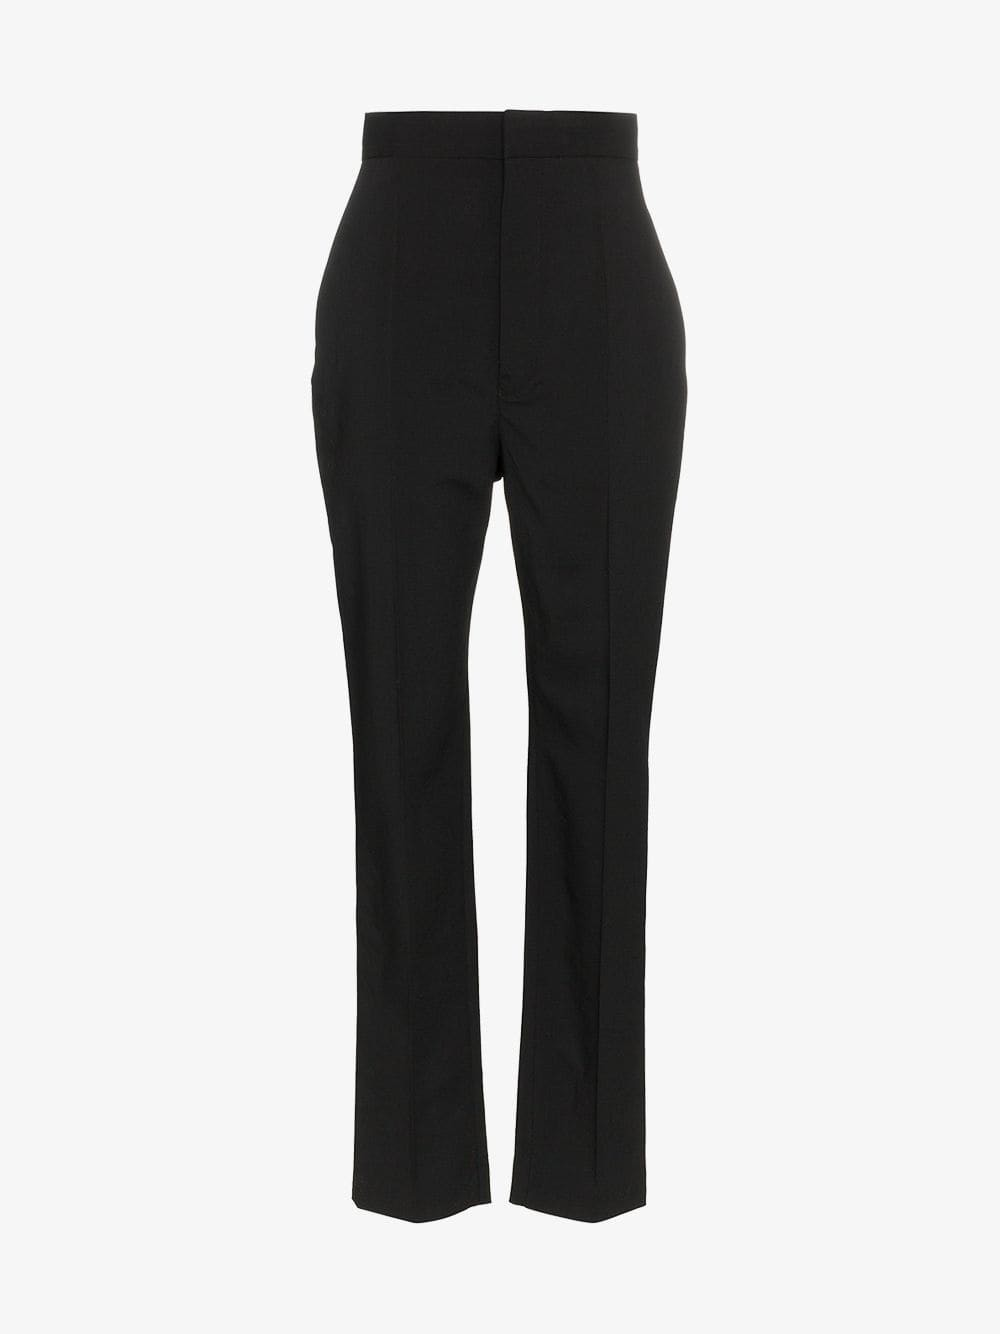 Haider Ackermann Slim-fit tailored wool-blend trousers in black